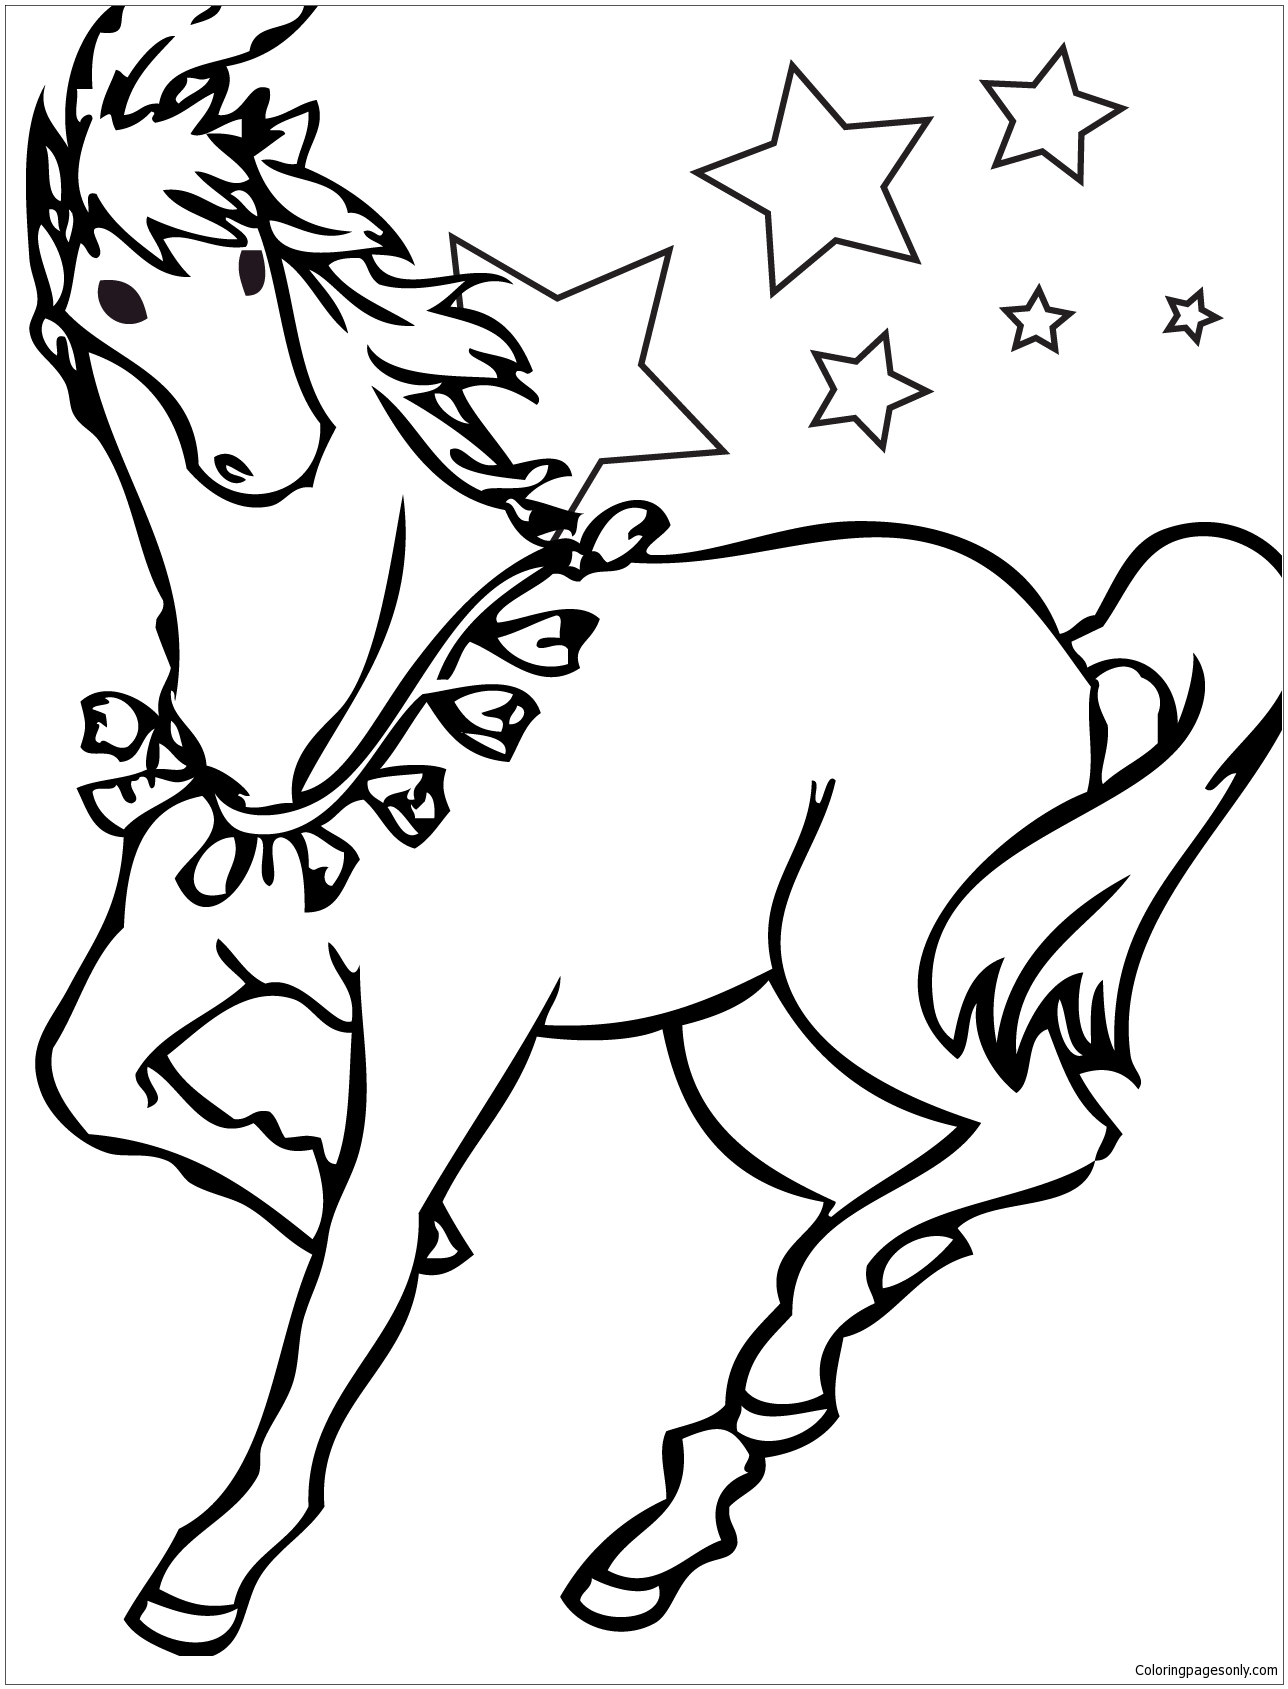 cool horse coloring pages link to many horse coloring pages horse coloring books coloring pages horse cool